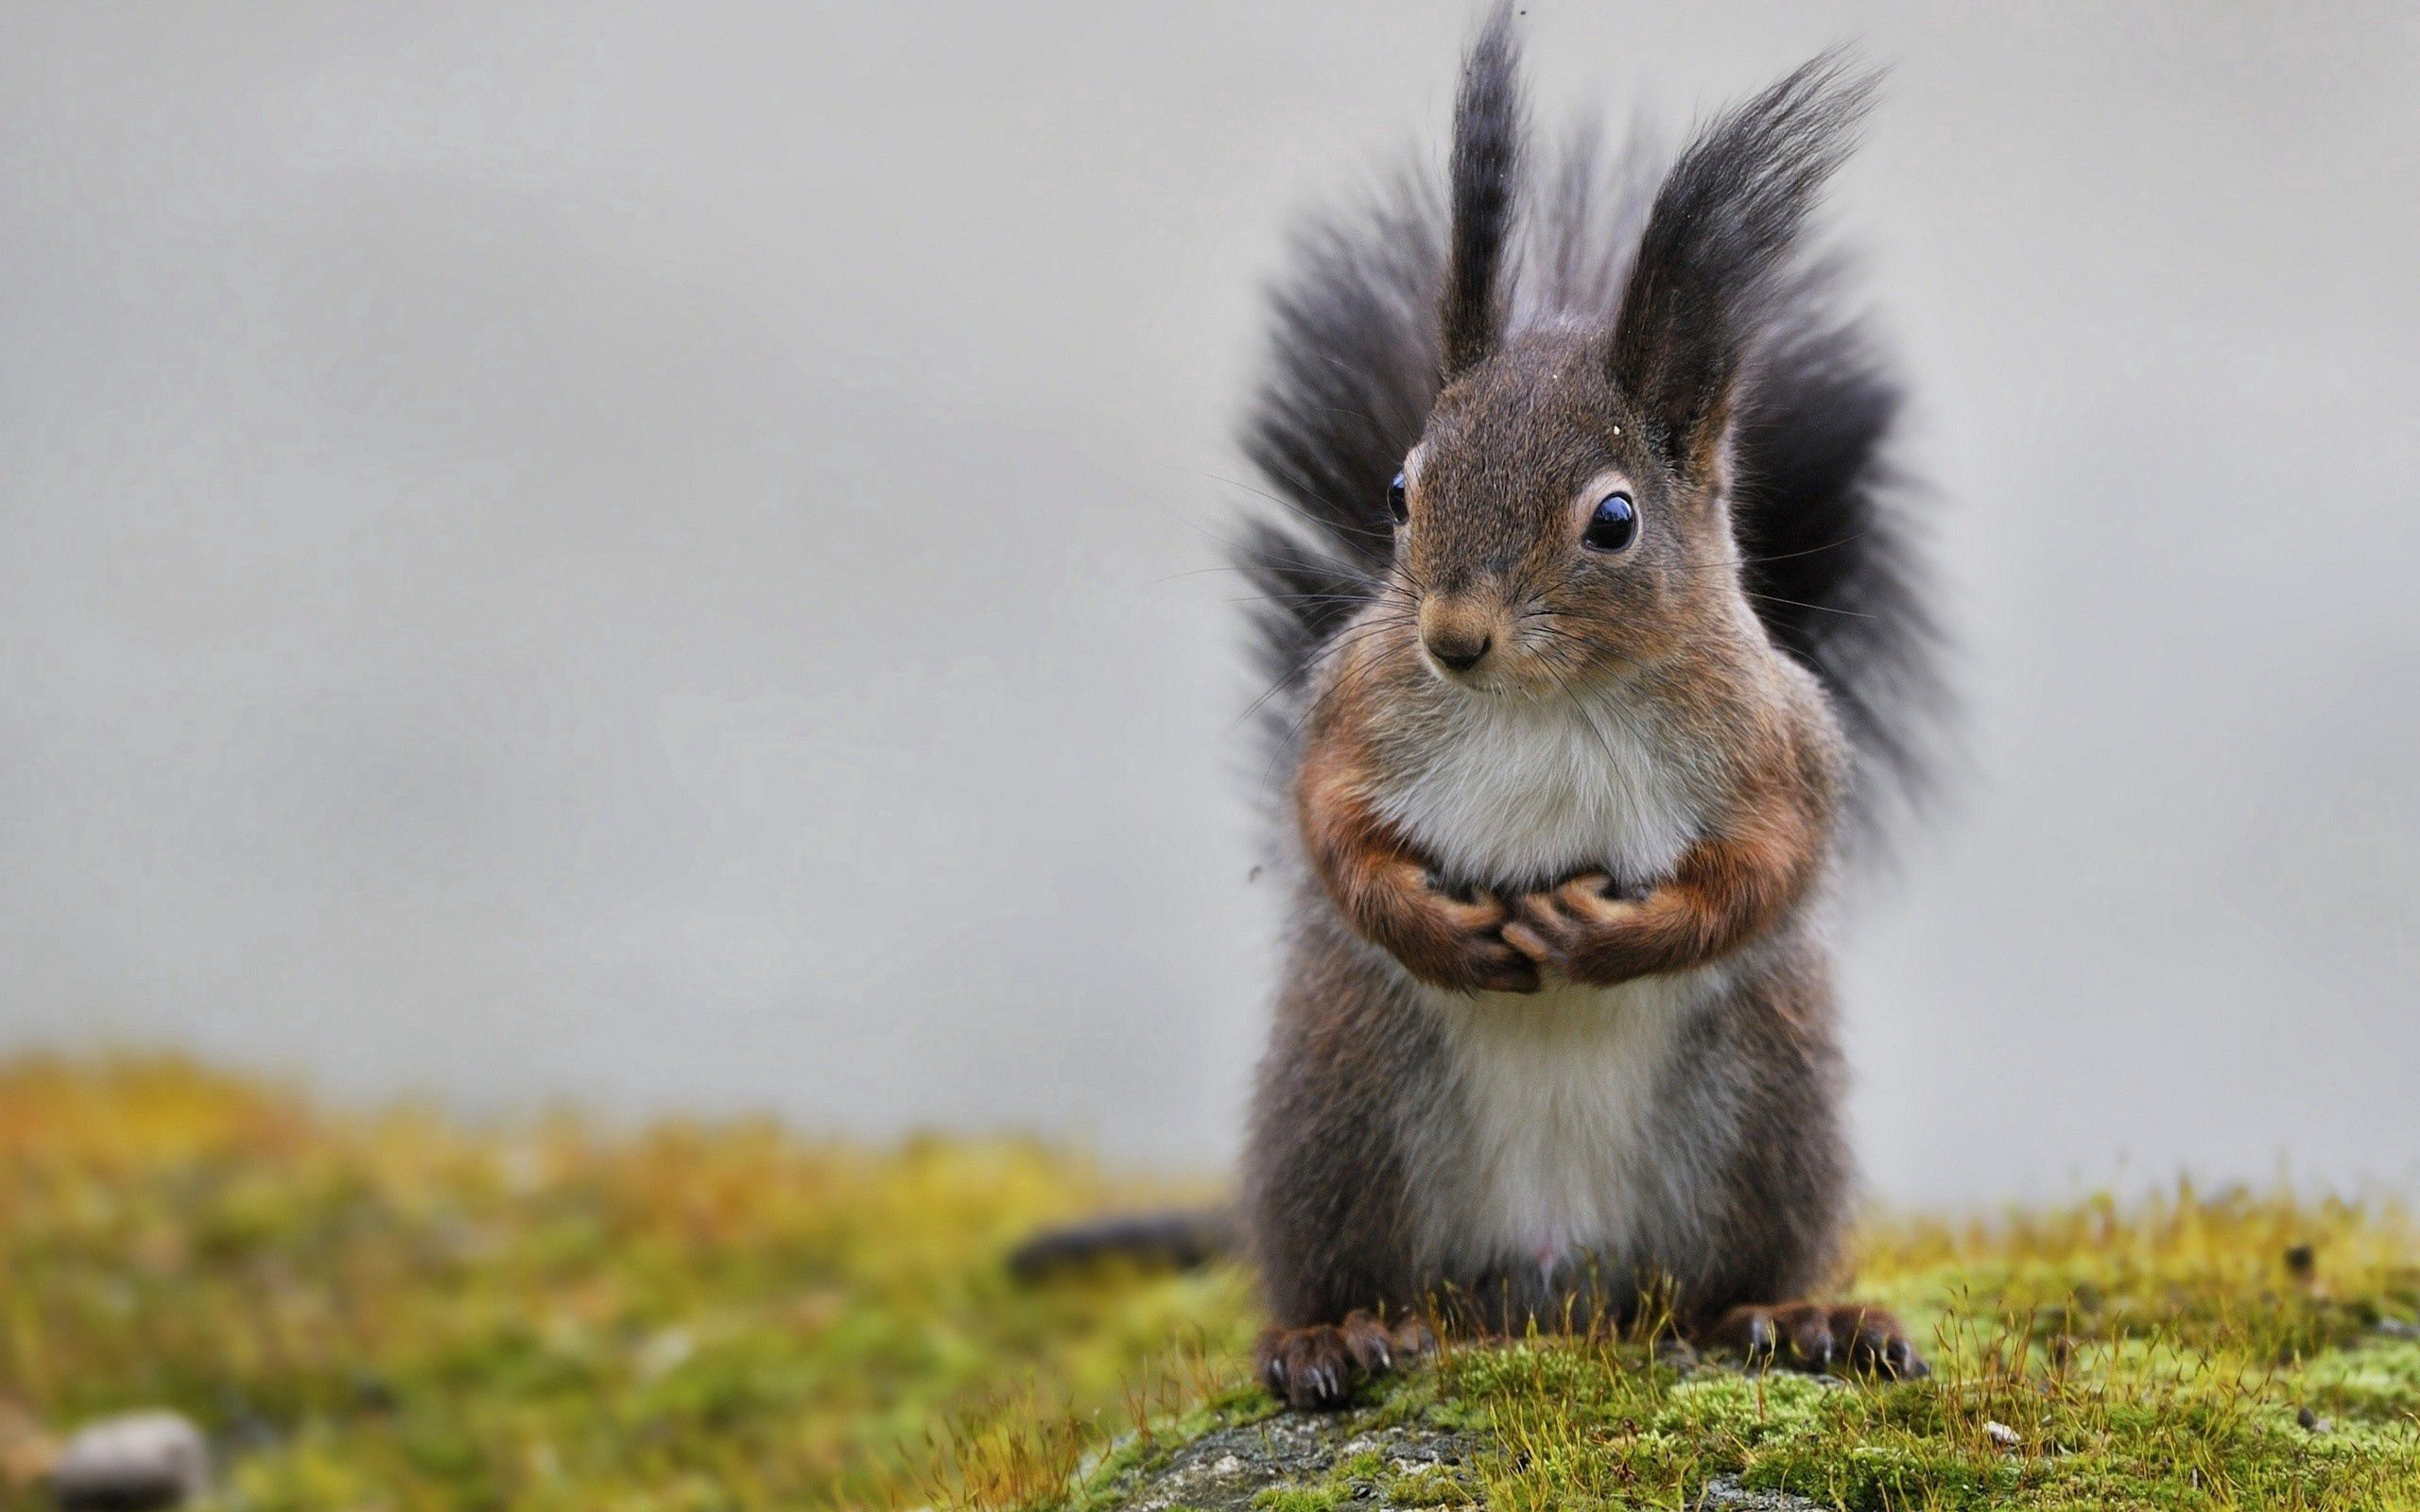 114702 Screensavers and Wallpapers Squirrel for phone. Download Animals, Squirrel, Grass, Animal, Fluffy Tail pictures for free